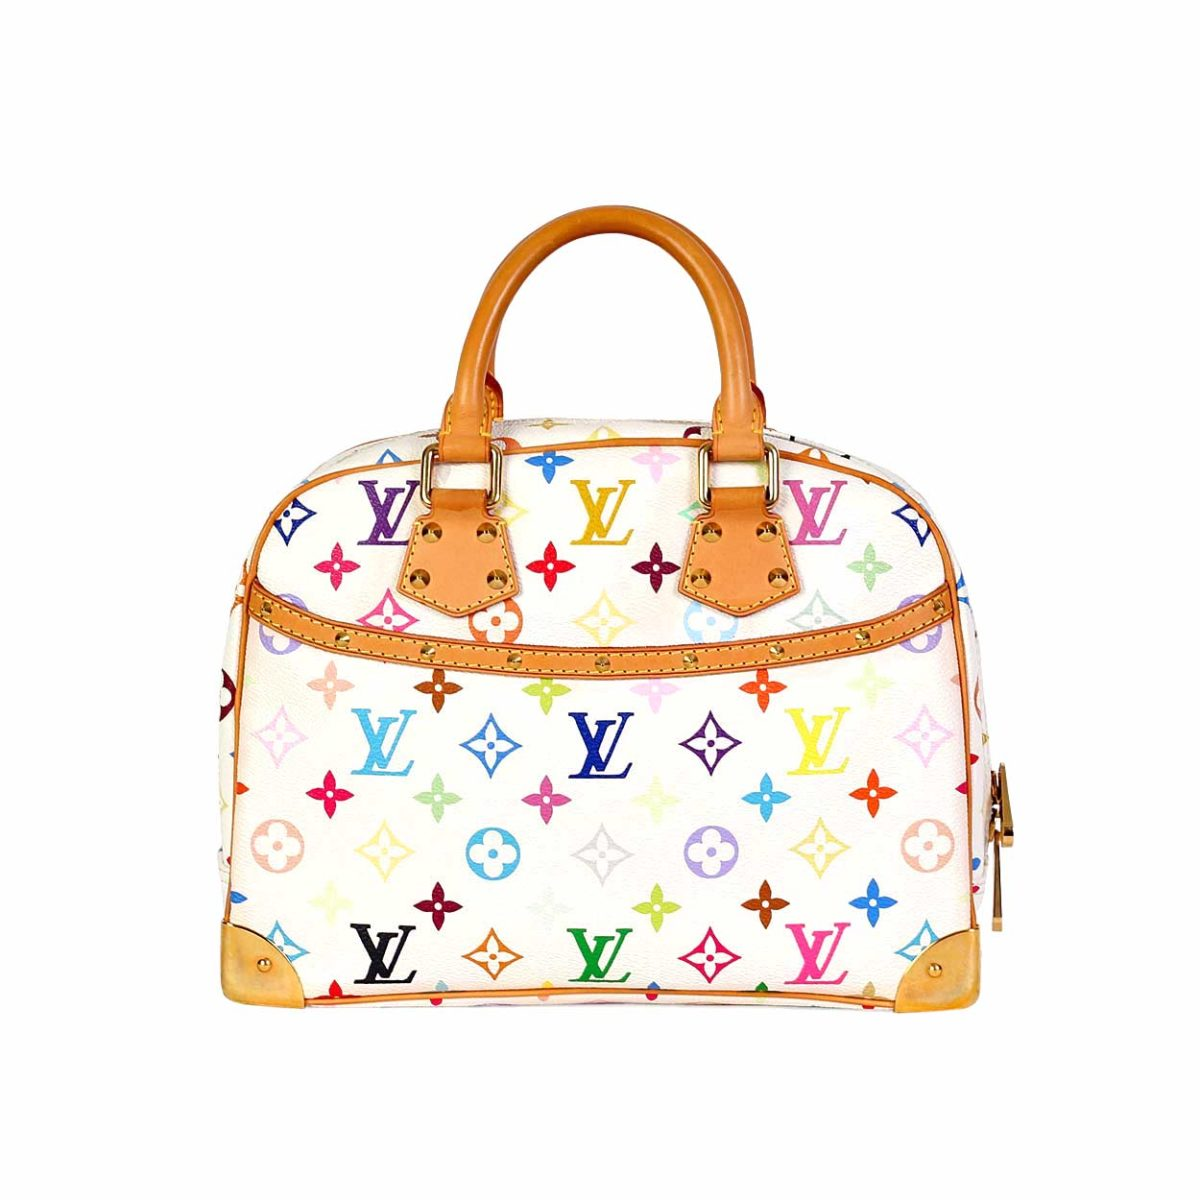 29cd82ee1035 LOUIS VUITTON Multicolor Trouville White Blanc